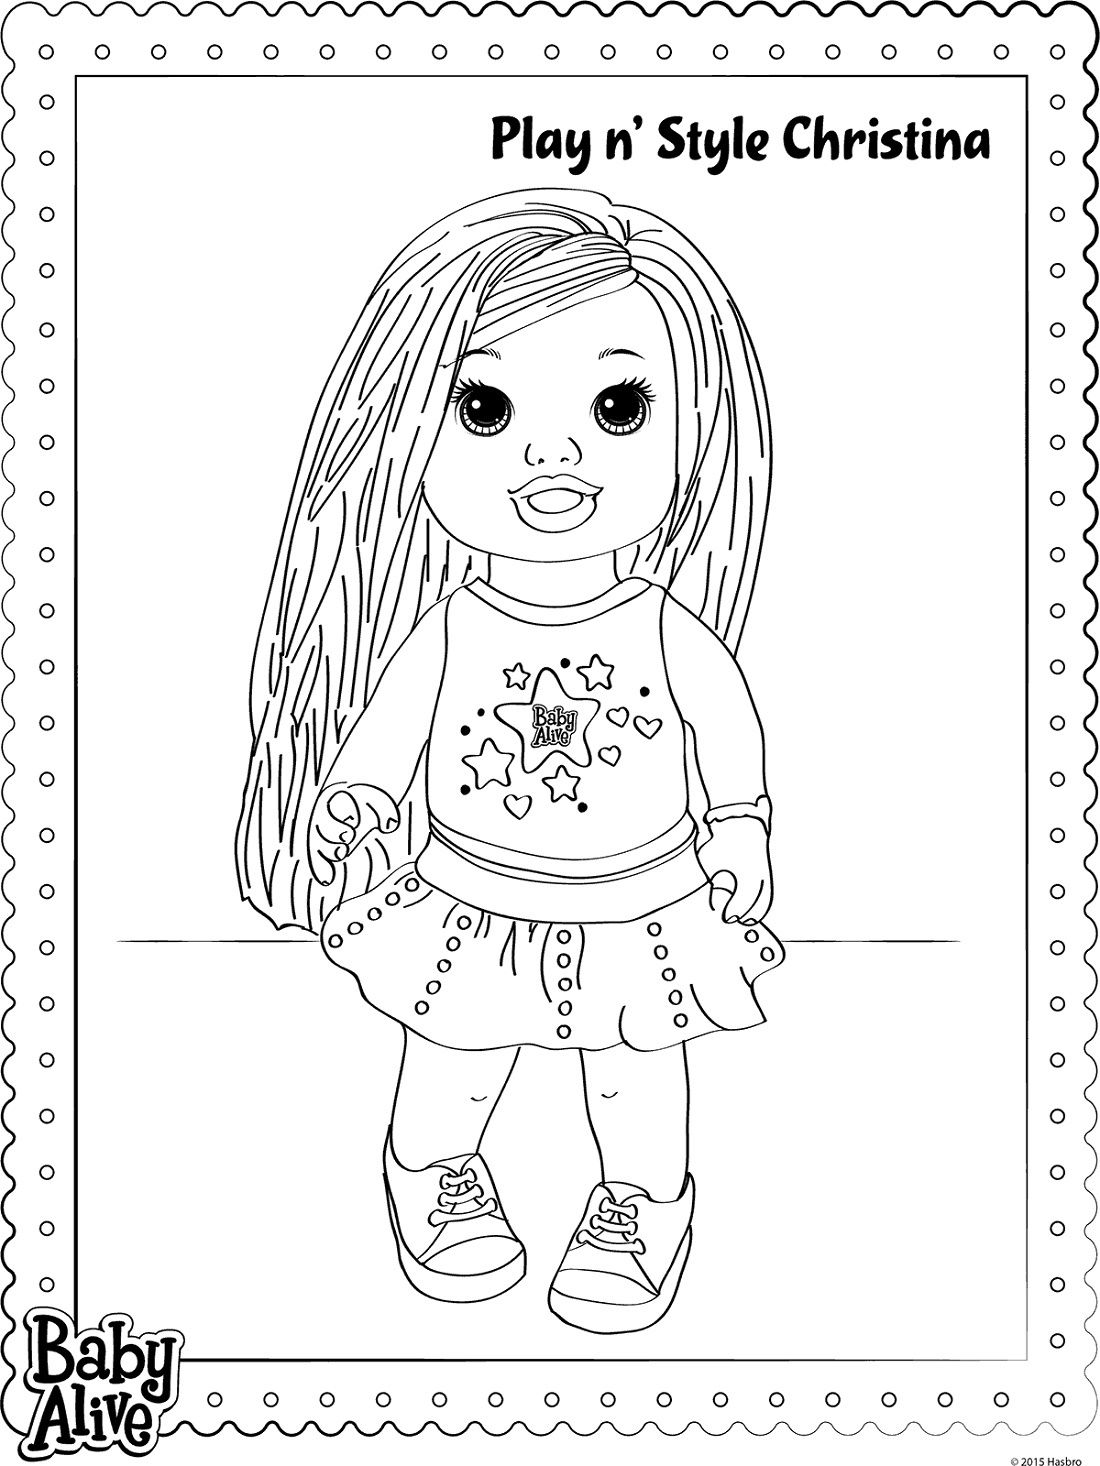 Christina Baby Alive Coloring Pages